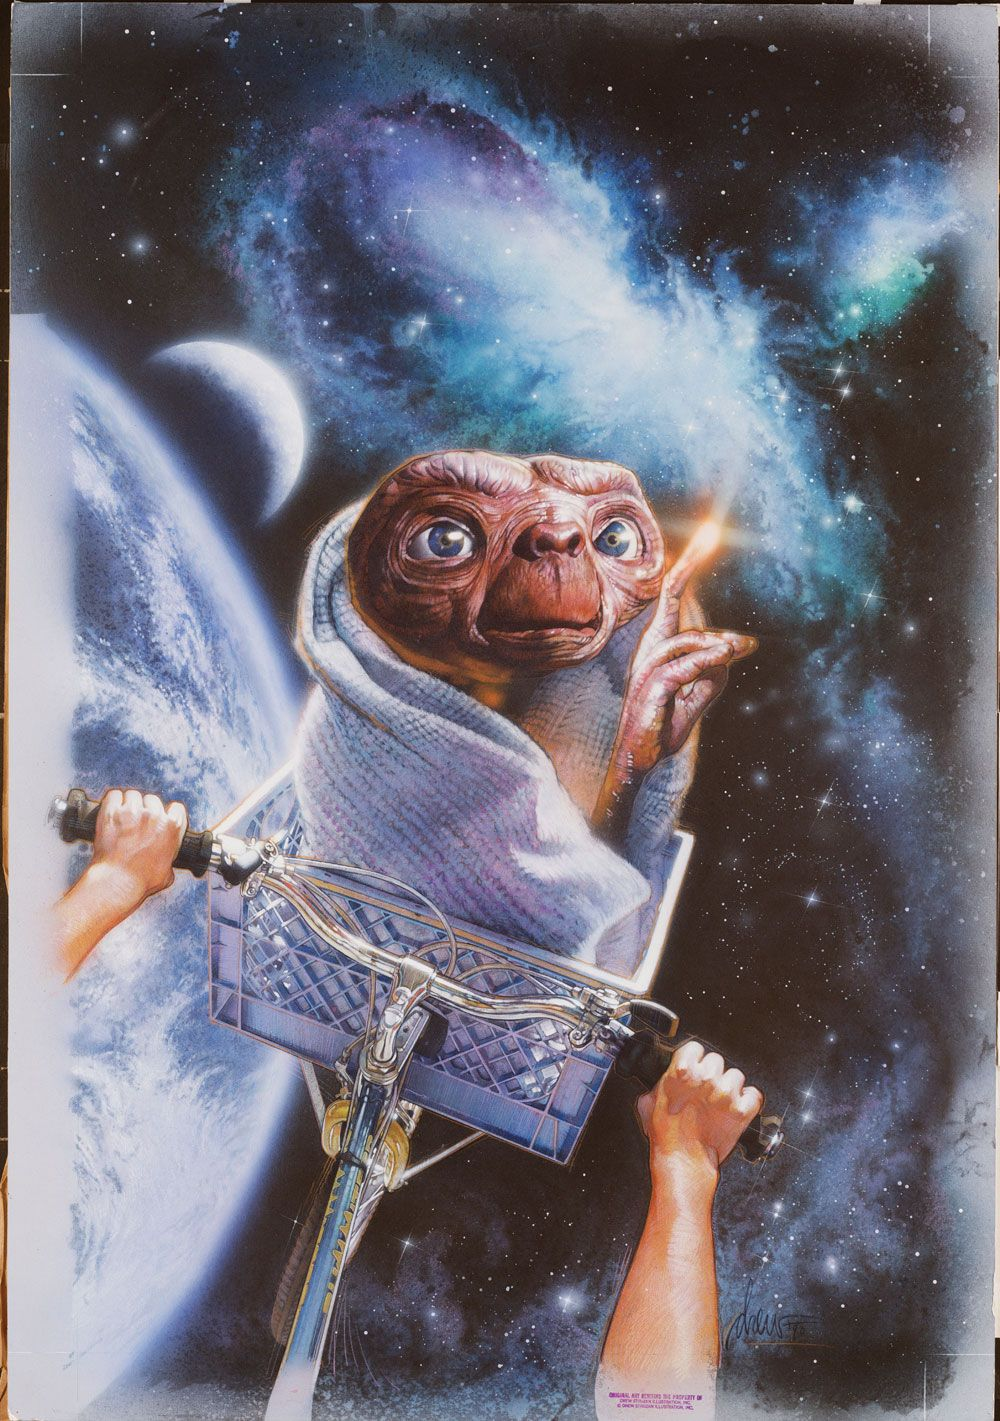 E.T. the Extraterrestrial Medium: Acrylics and colored pencils on gessoed board Size: 30x40 inches Year 1990 Director Steven Spielberg calls this piece of art the quintessential E.T.. It was reproduced as a poster, was used as the logo for Universal City Studios Parks, was seen on billboards and many products. Not bad for an ugly little guy from another planet, that's E. T. I mean. © Copyright Universal City Studios 1990